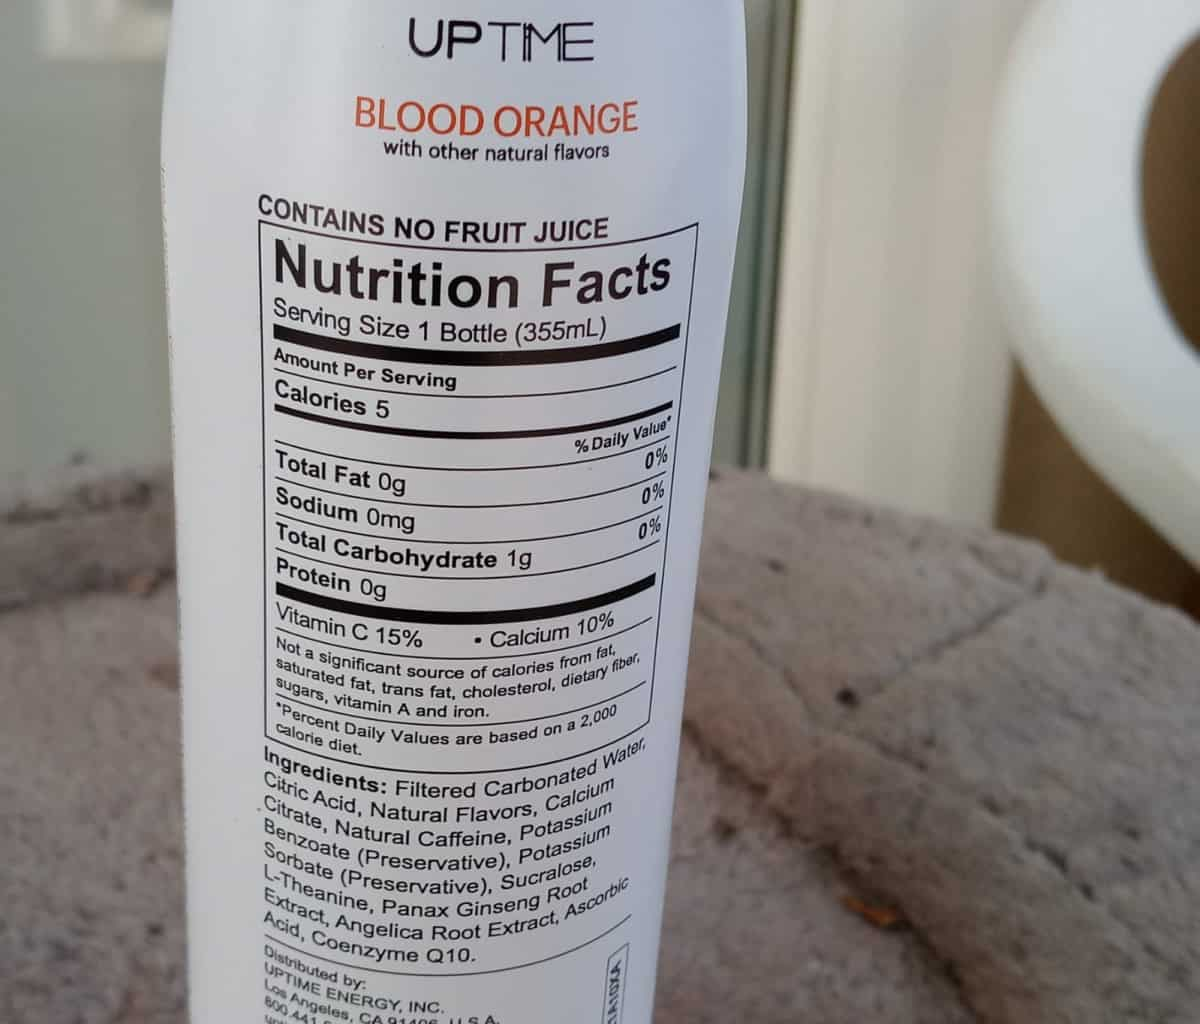 Nutrition facts of Uptime.